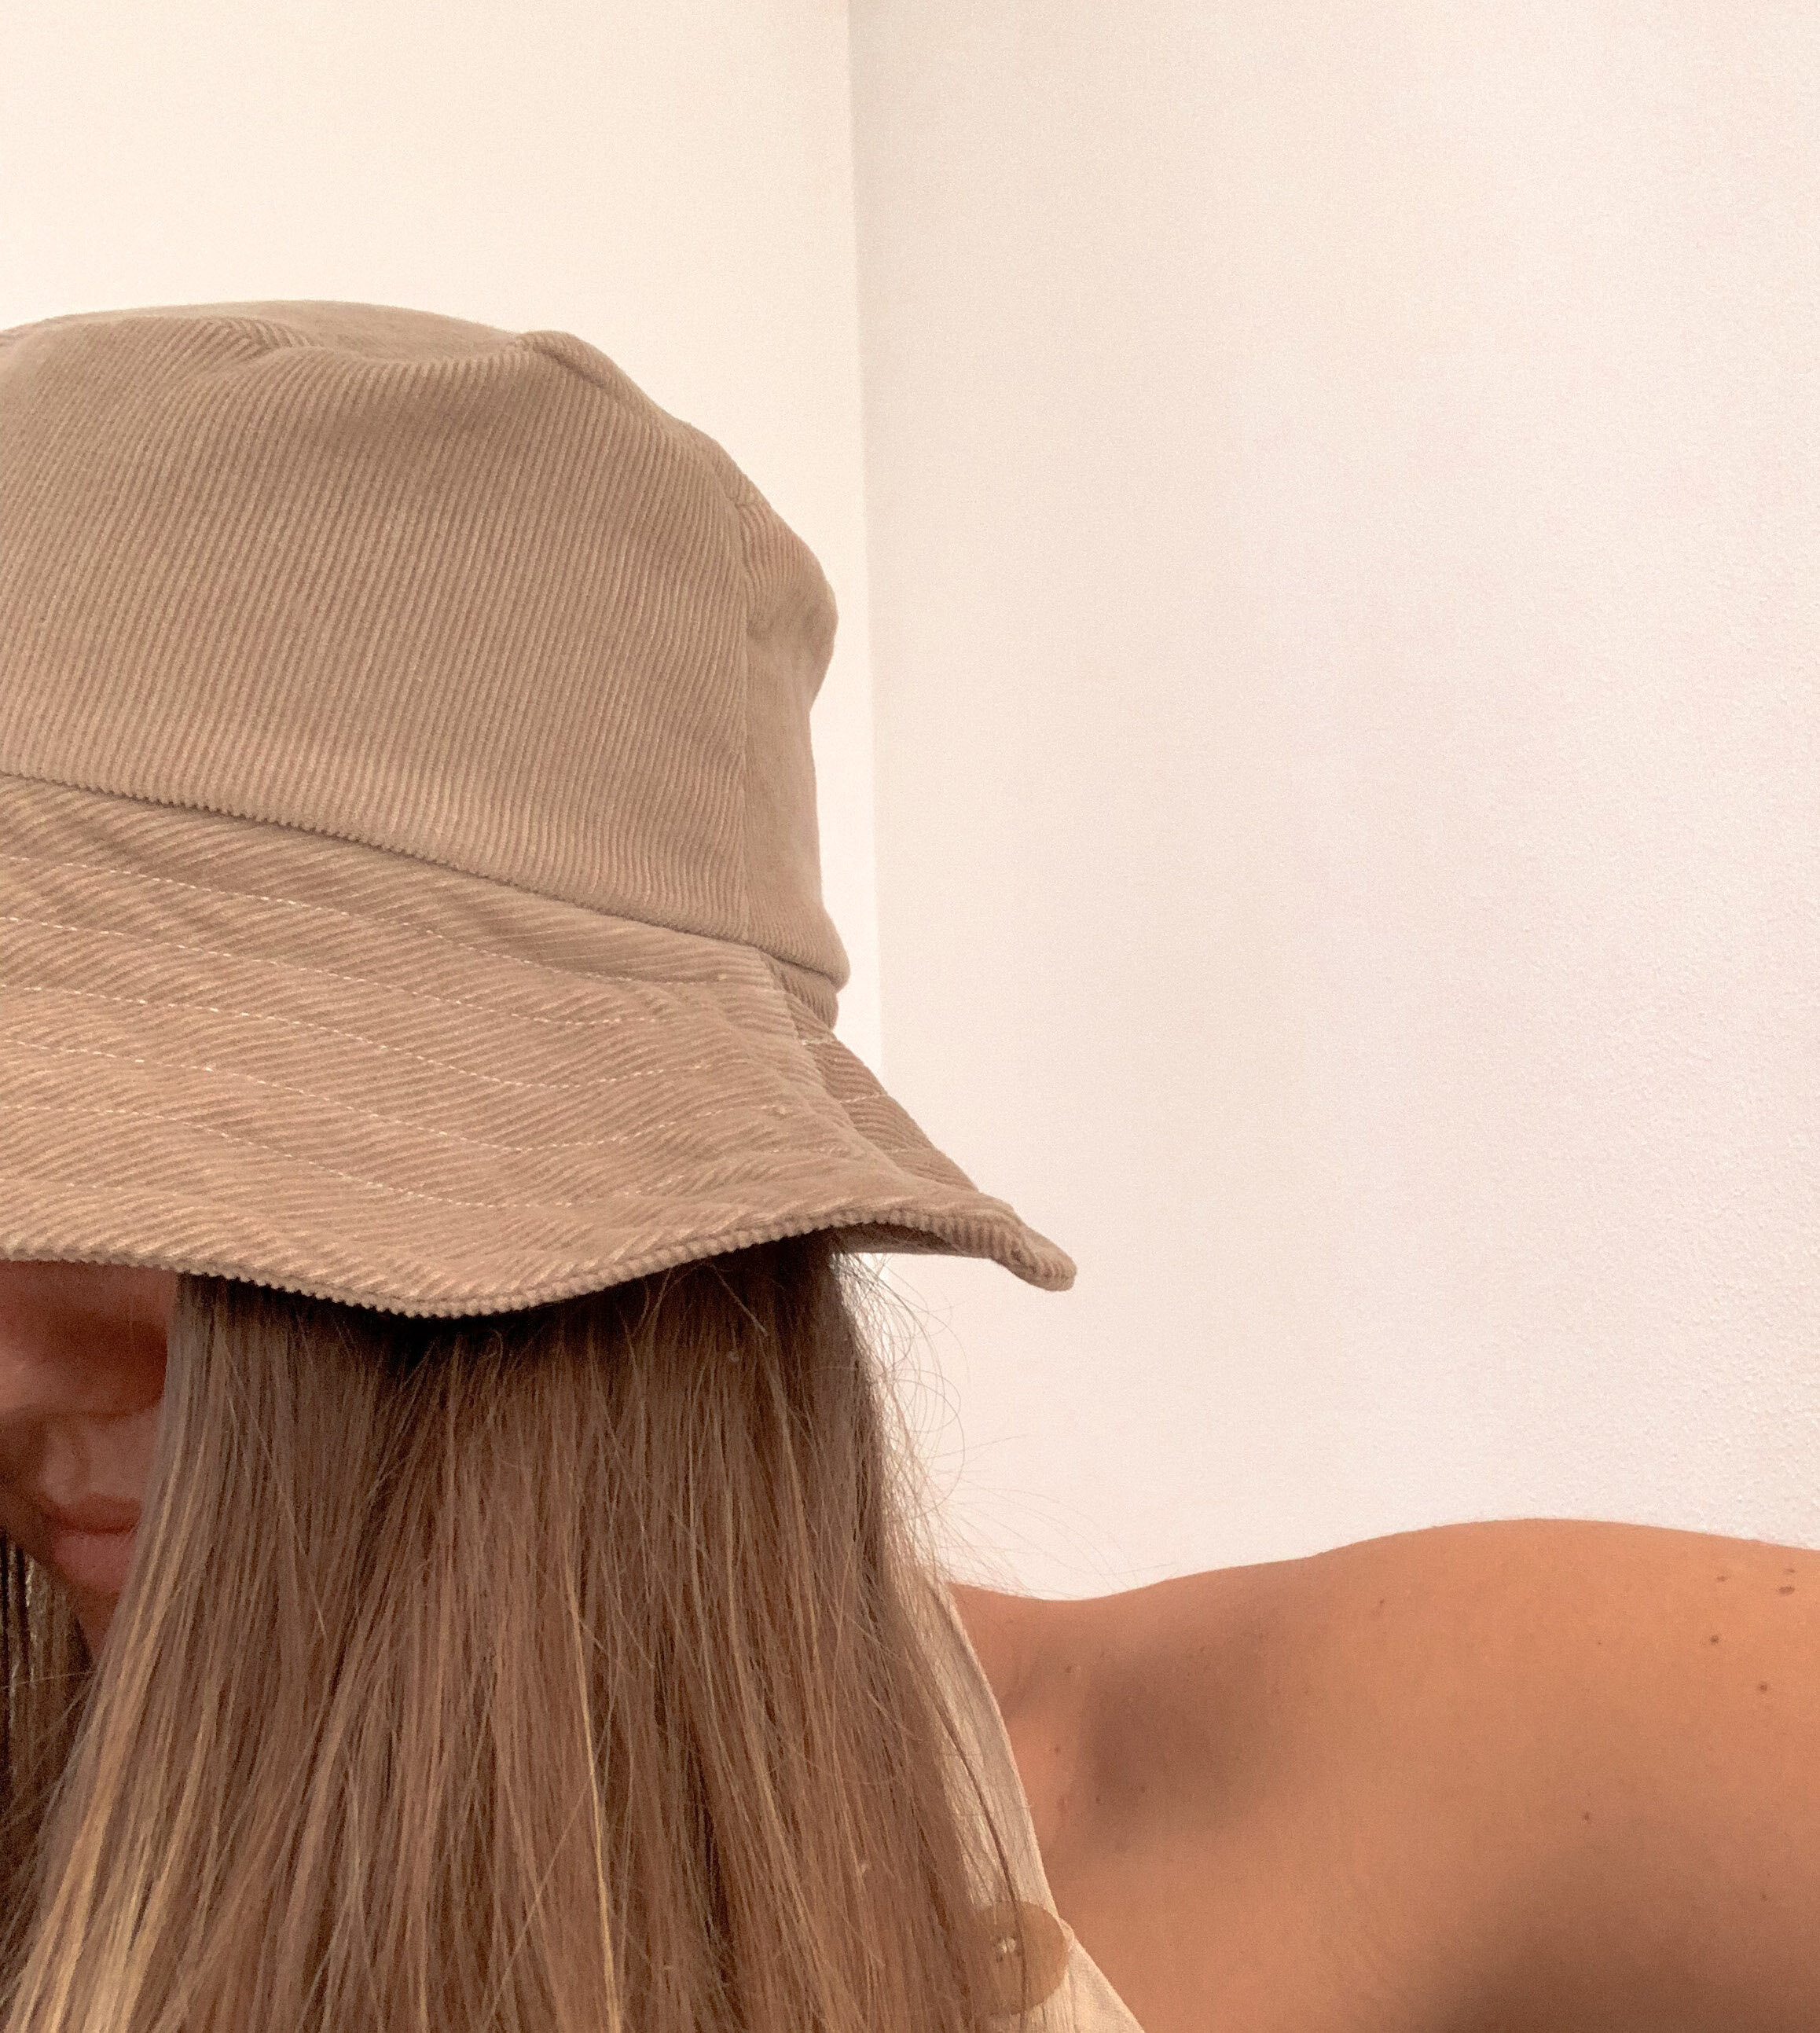 Diy Simple Bucket Hat The Essentials Club Creative Diy Hub